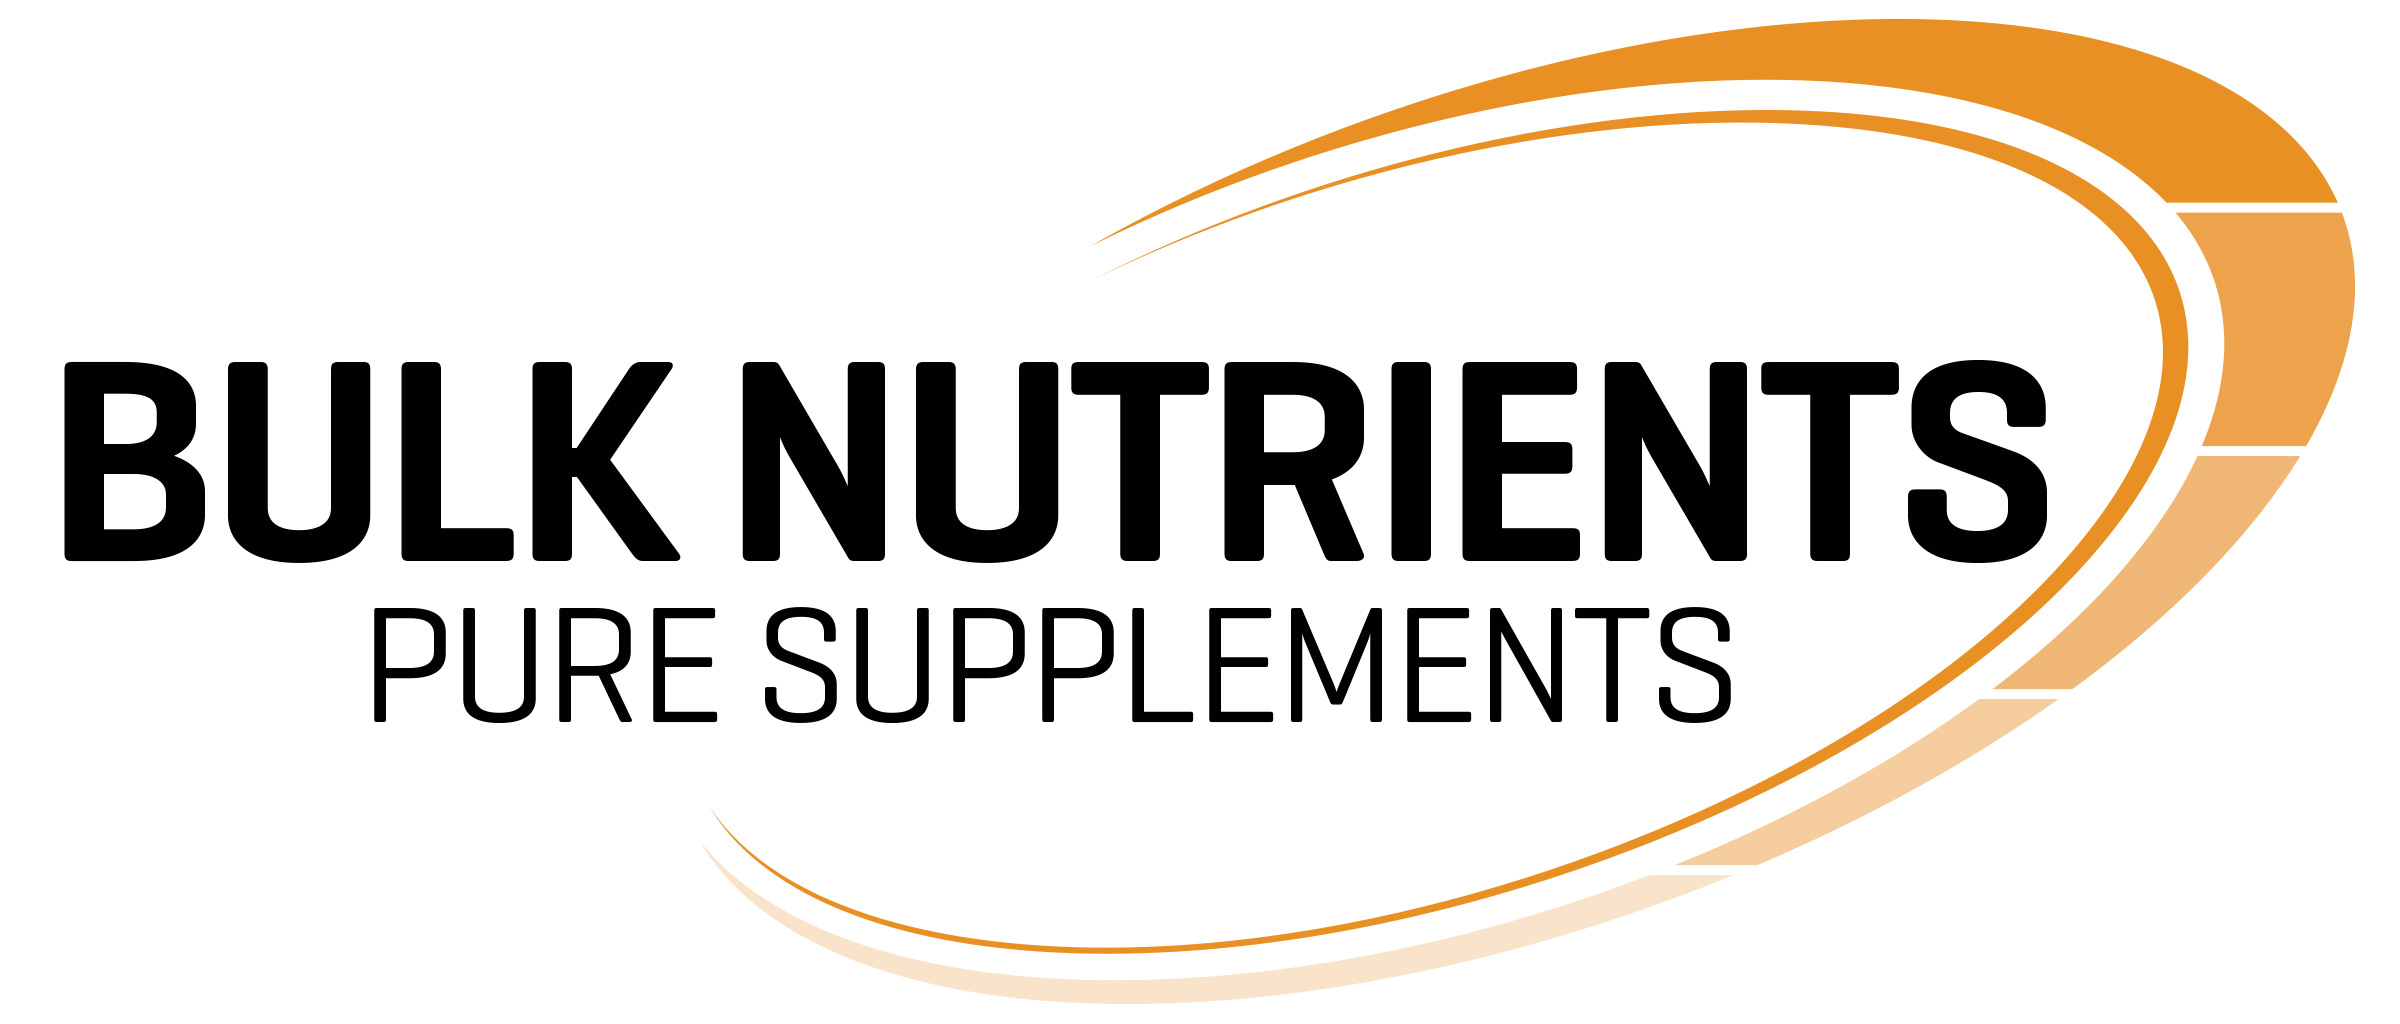 Bulk-Nutrients-Logo-2400x1024 - Copy.jpg